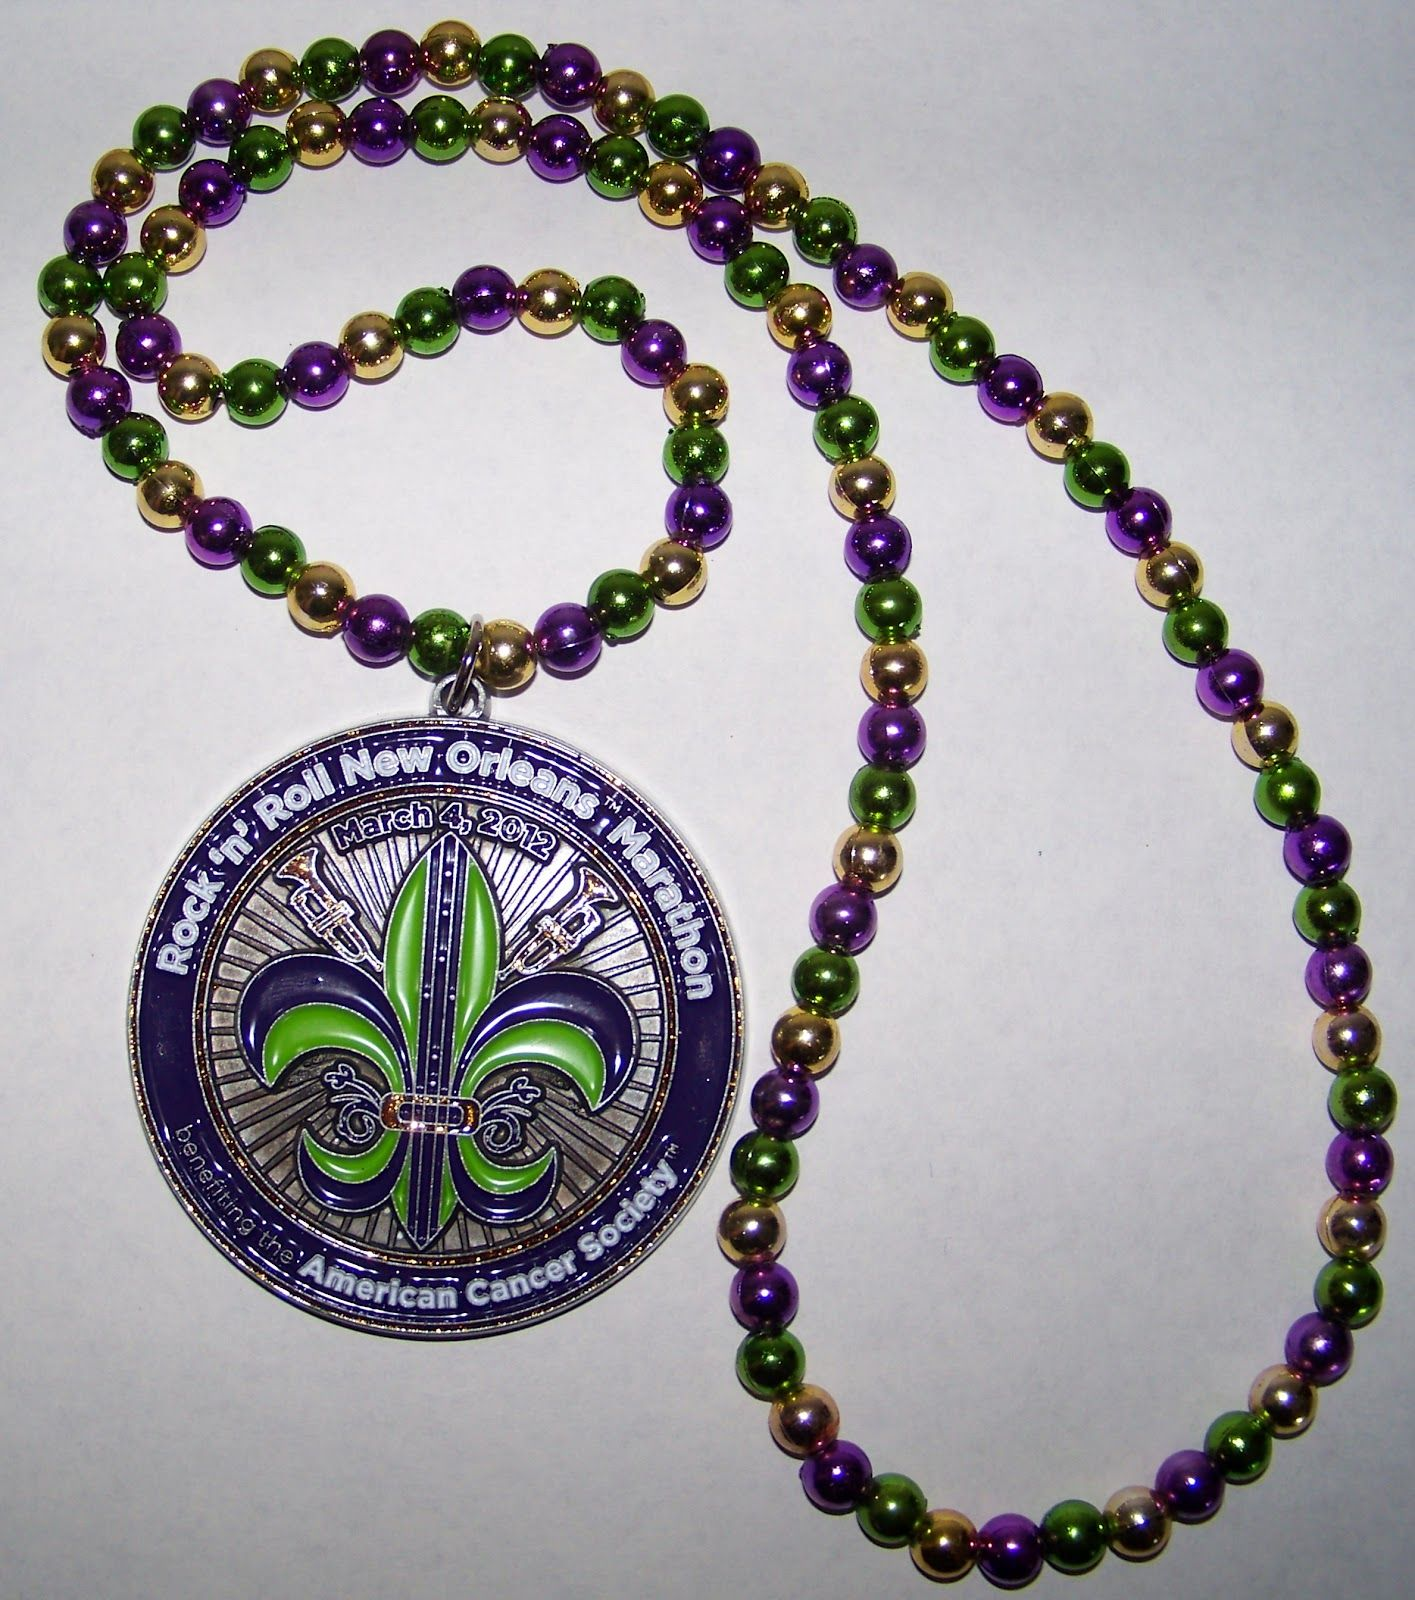 Just, Mardi Gras beads, people.